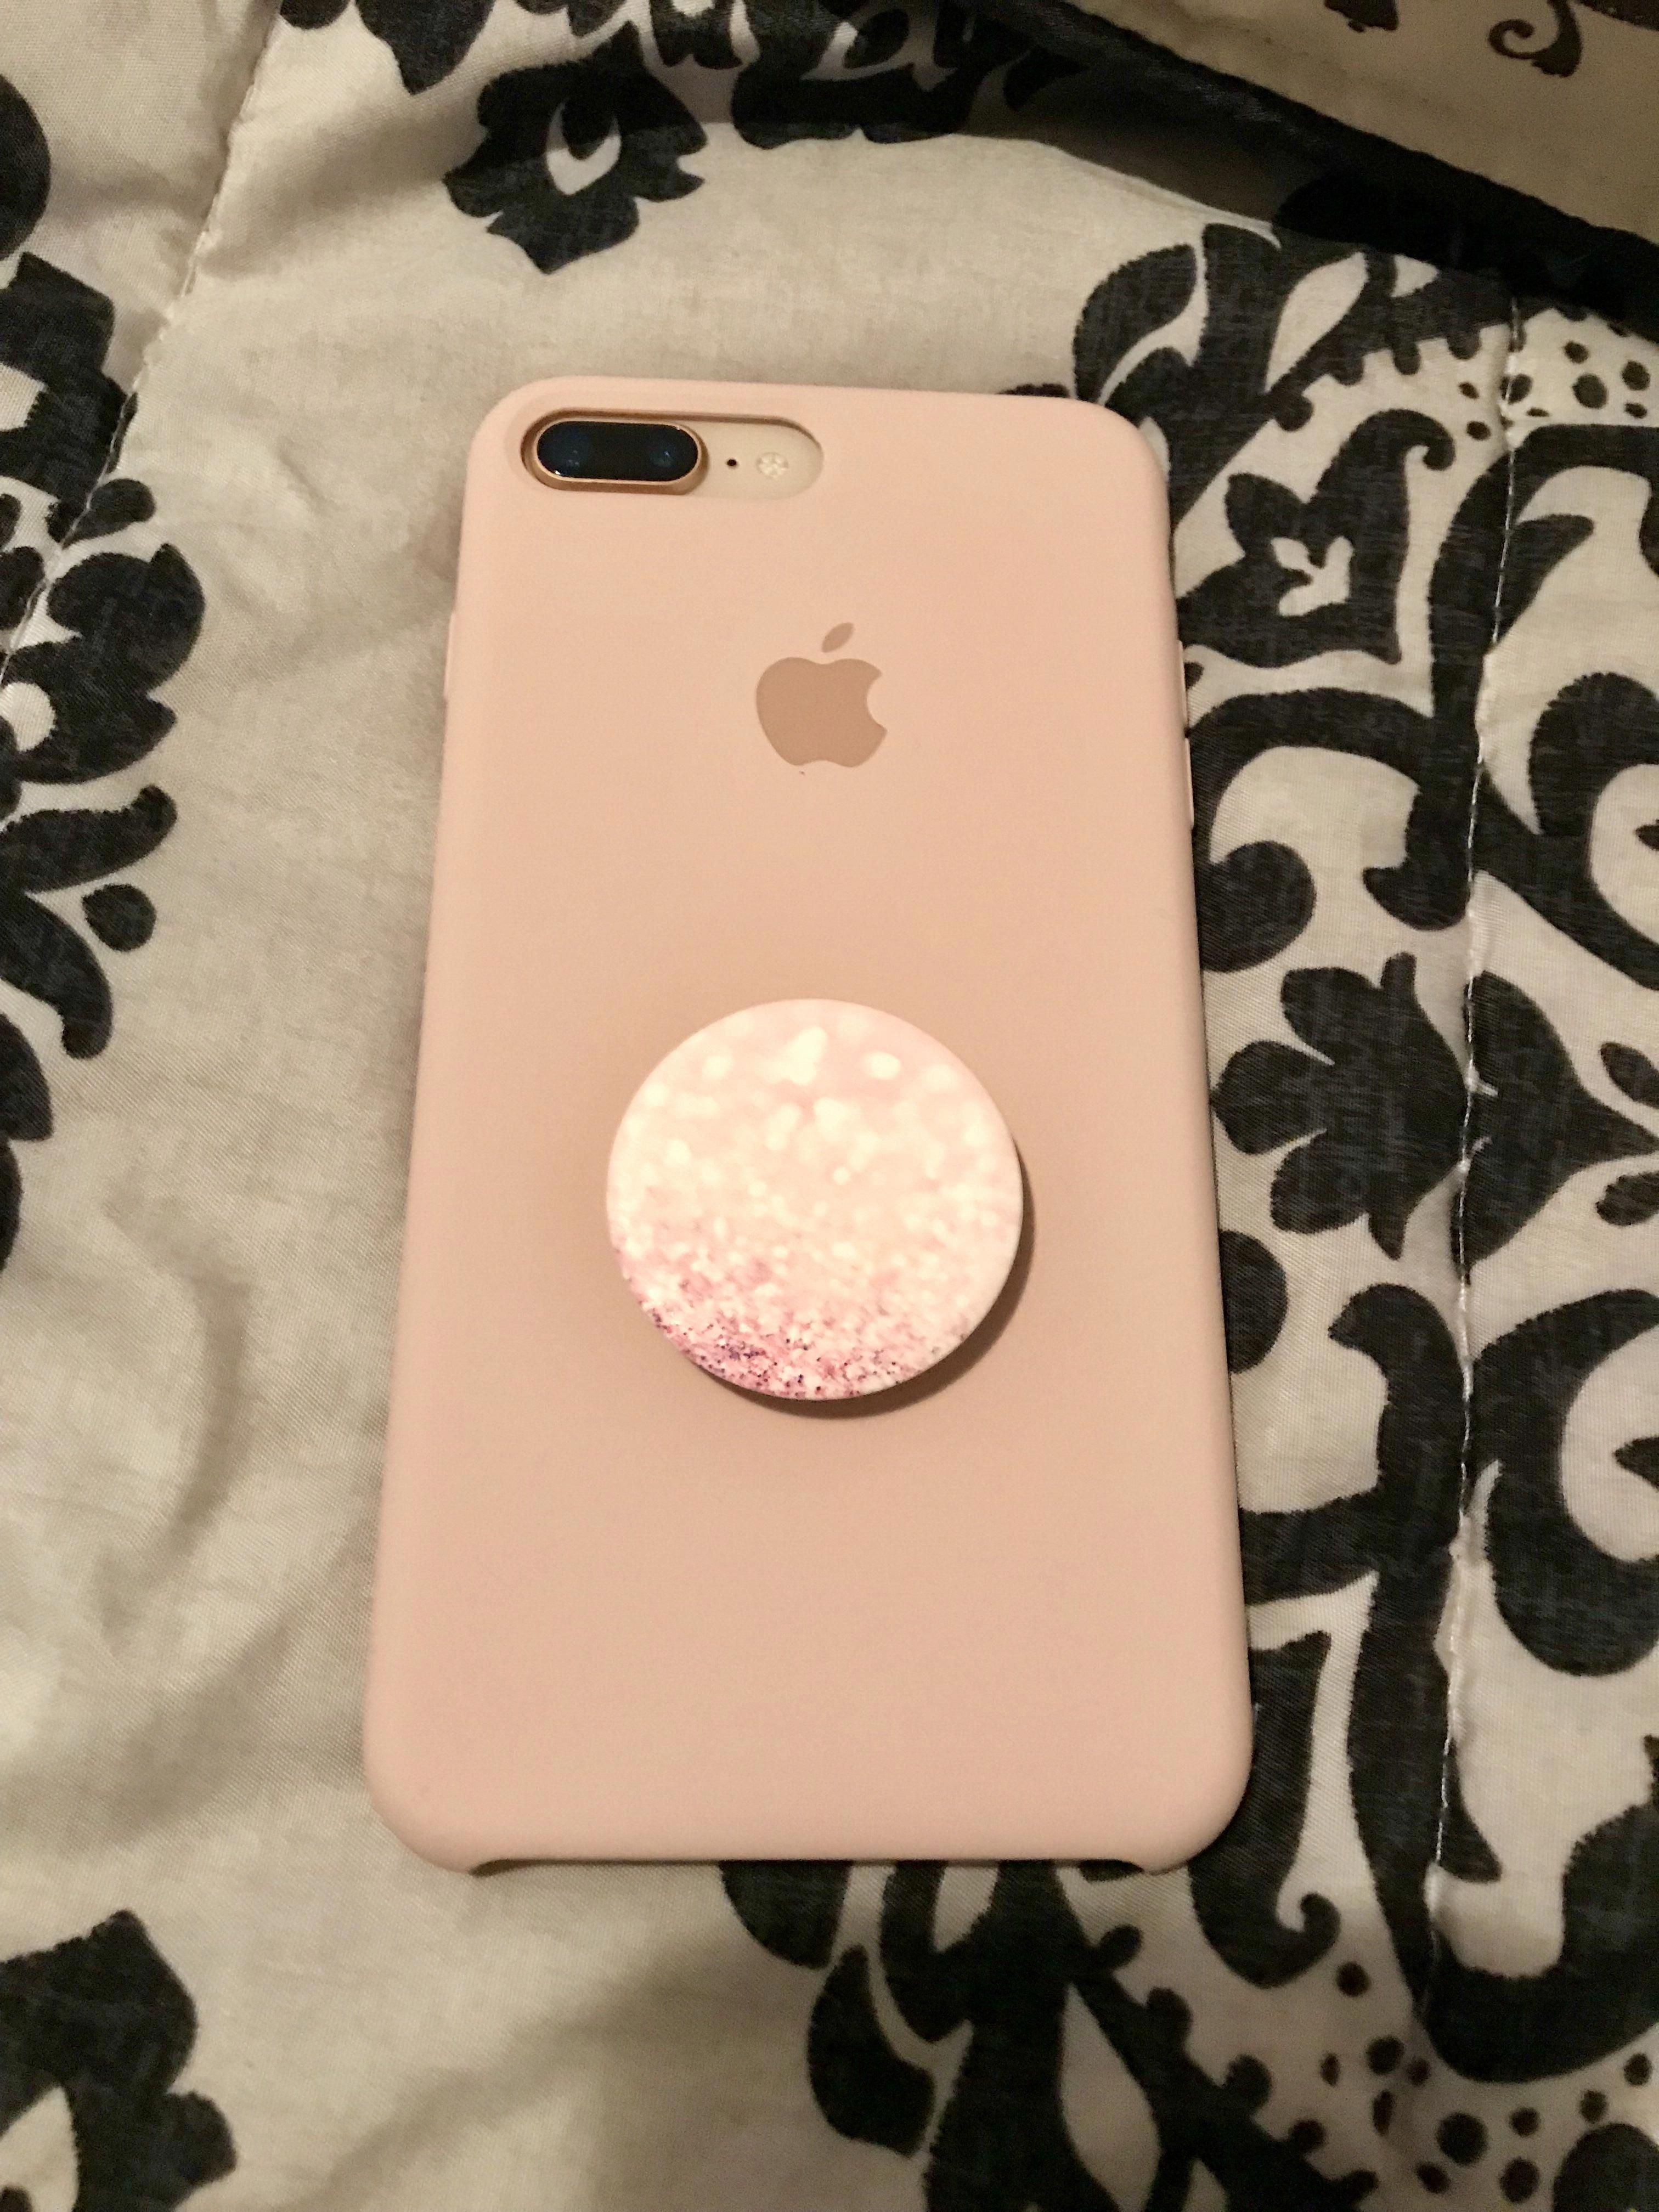 Iphone 8 Plus Gold With Pink Sand Apple Silicone Case Pink Blush Pop Socket Iphone7plus Unicorn Iphone Case Iphone Phone Cases Pink Iphone